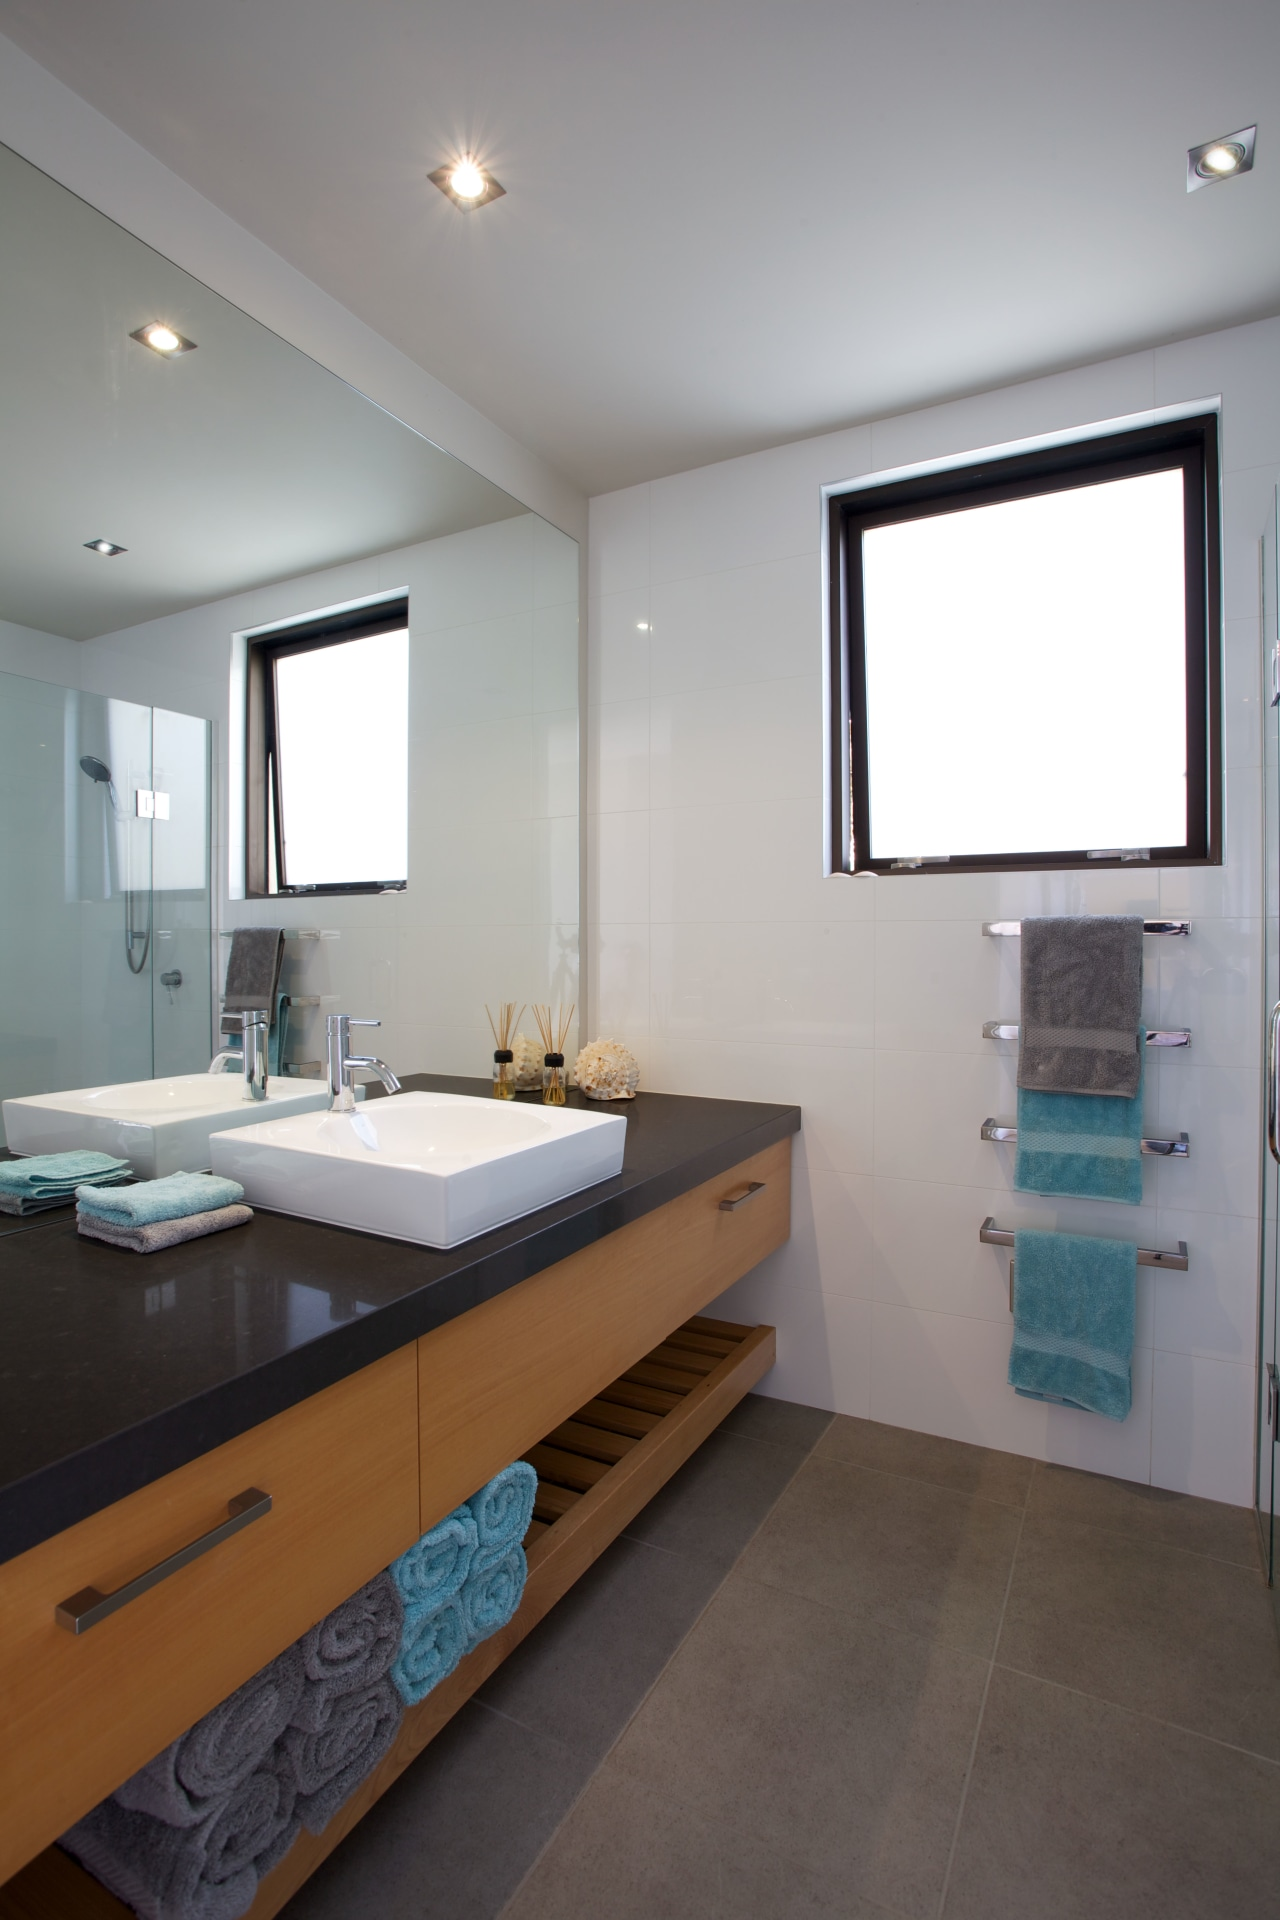 A large bathroom mirror creates the illusion of architecture, bathroom, countertop, floor, home, interior design, real estate, room, sink, gray